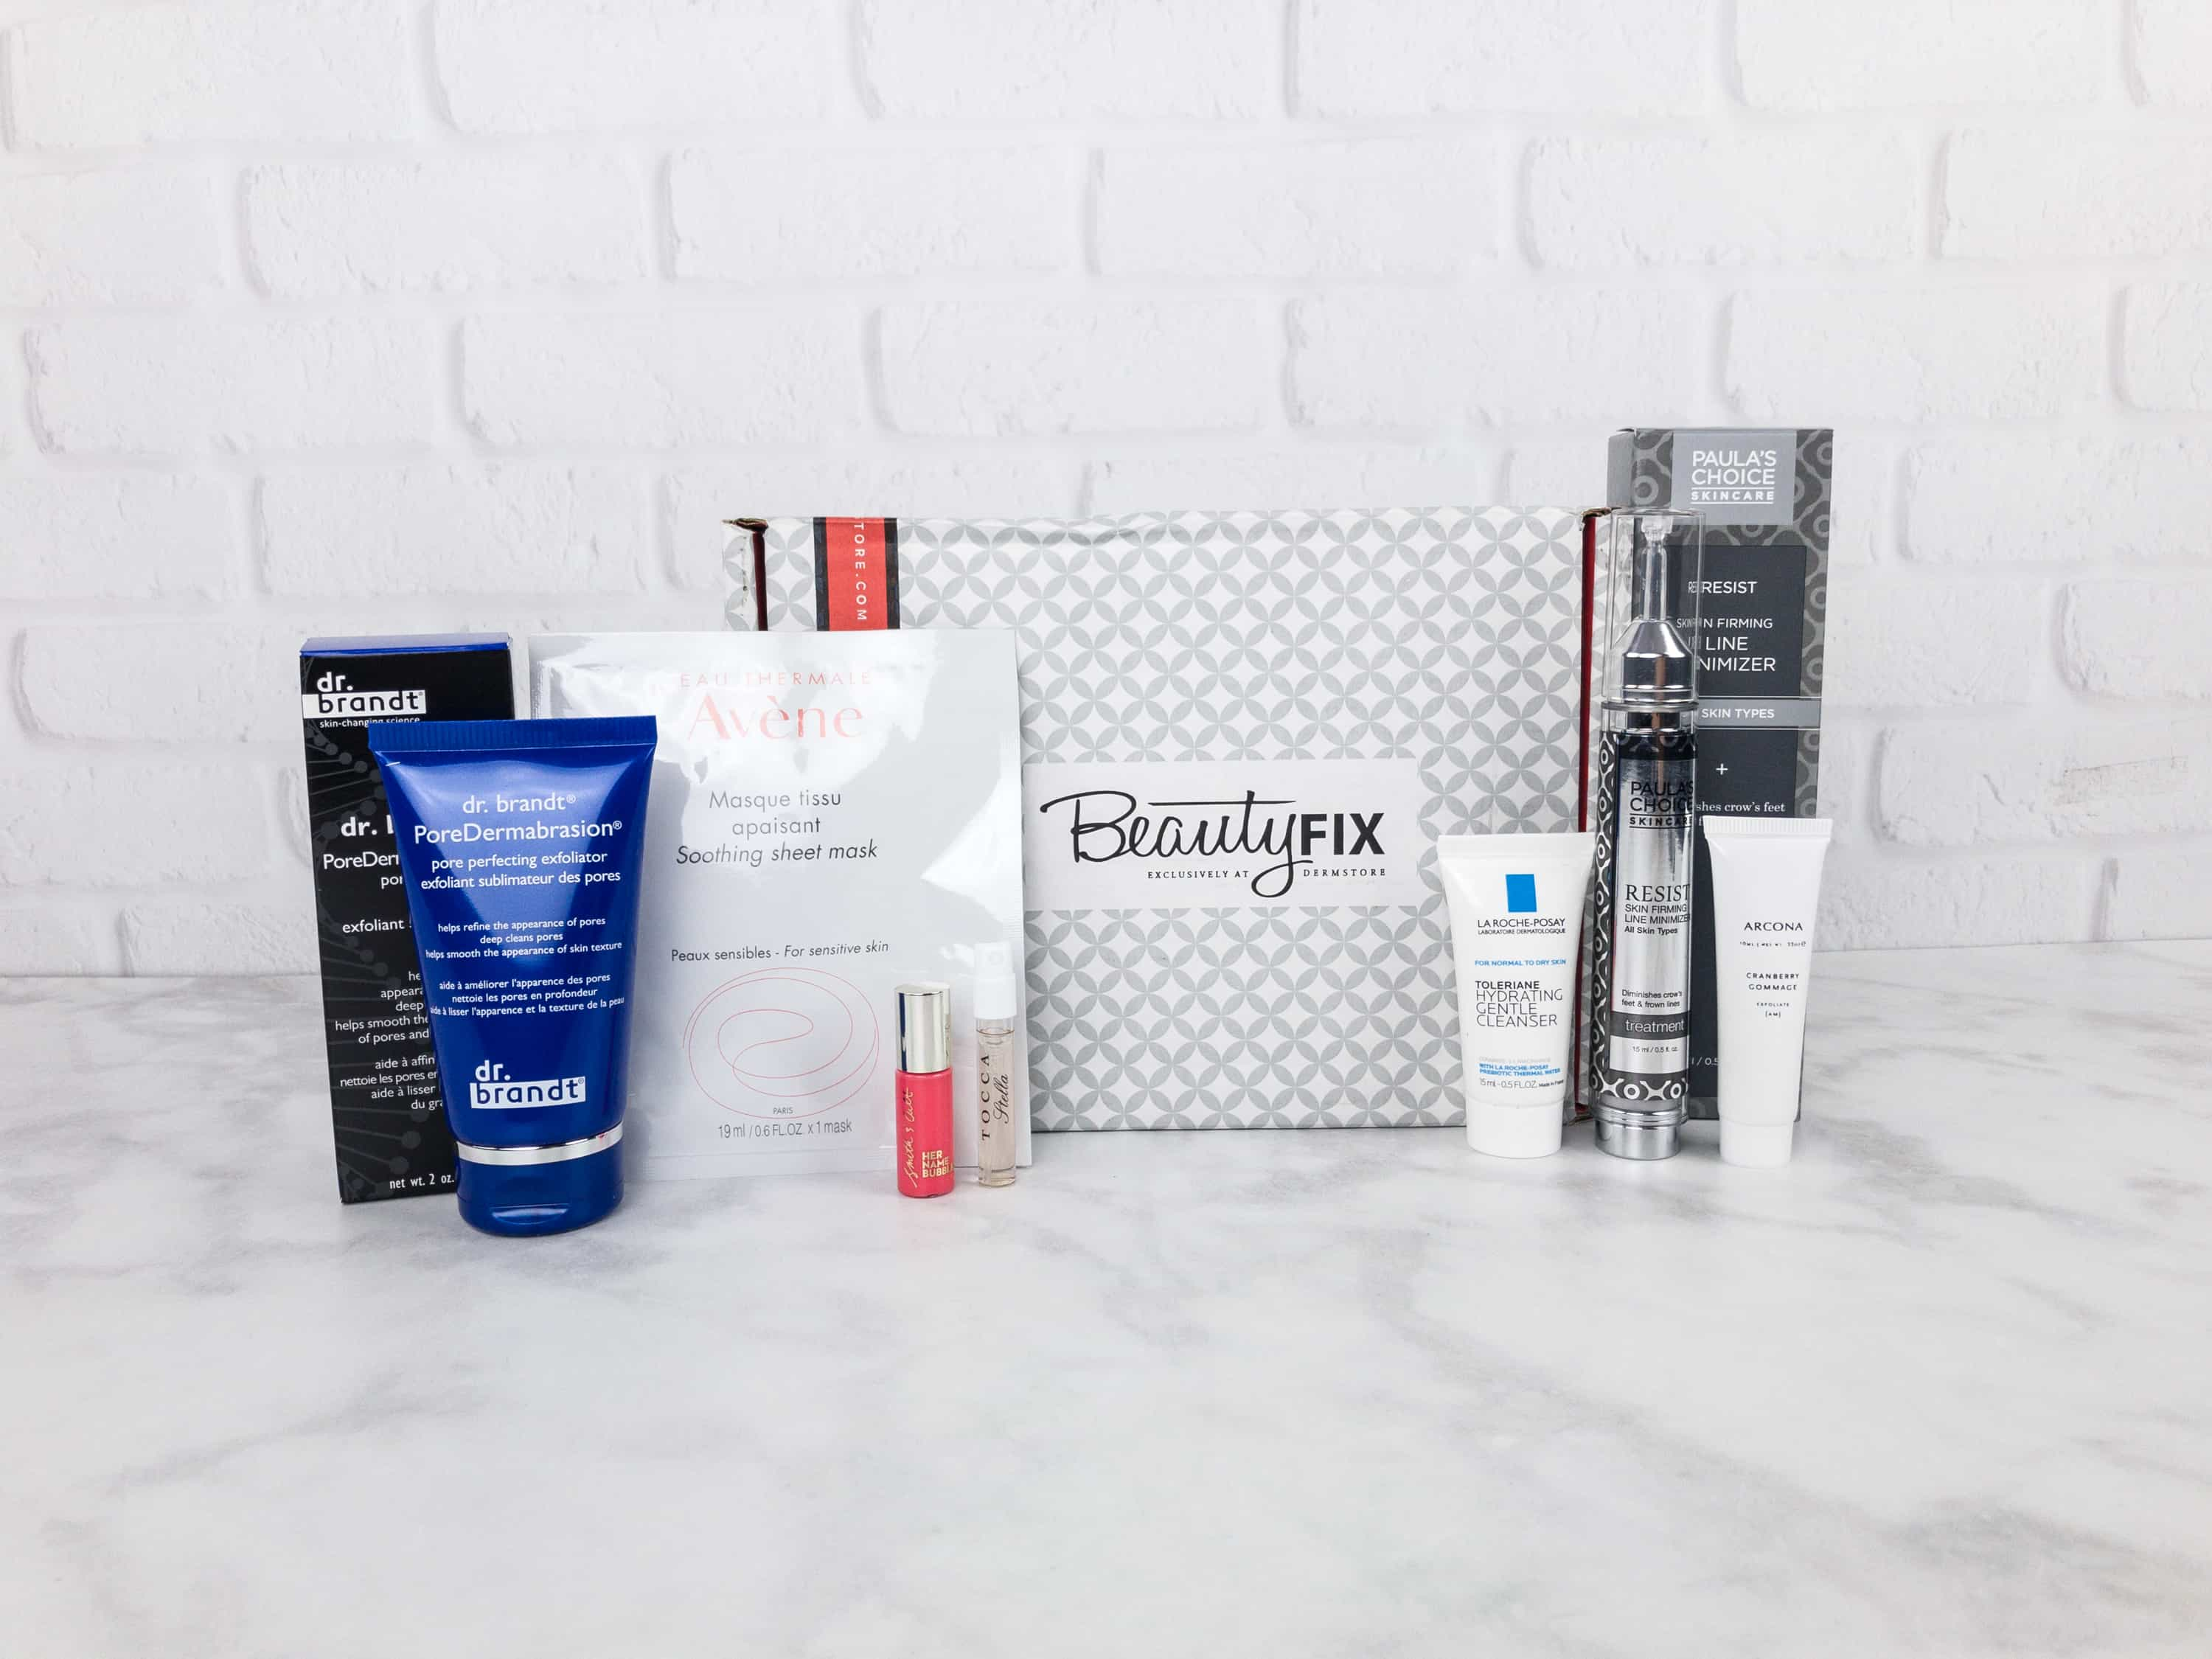 BeautyFIX October 2017 Review + Coupon!